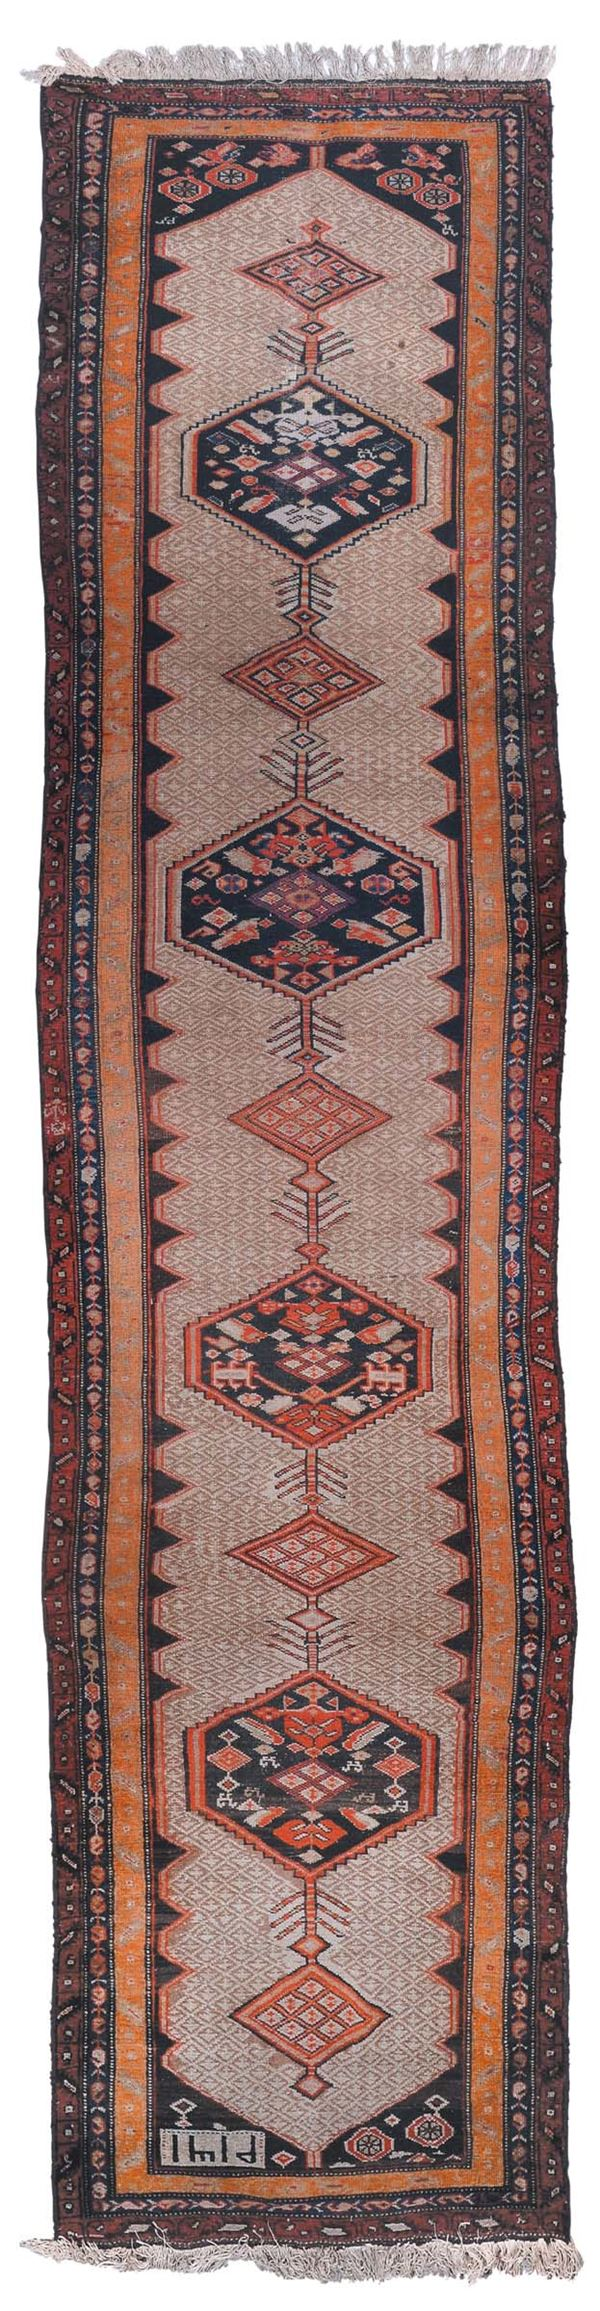 A Northwest Persian runner late 19th century.Dated 1319 good condition.